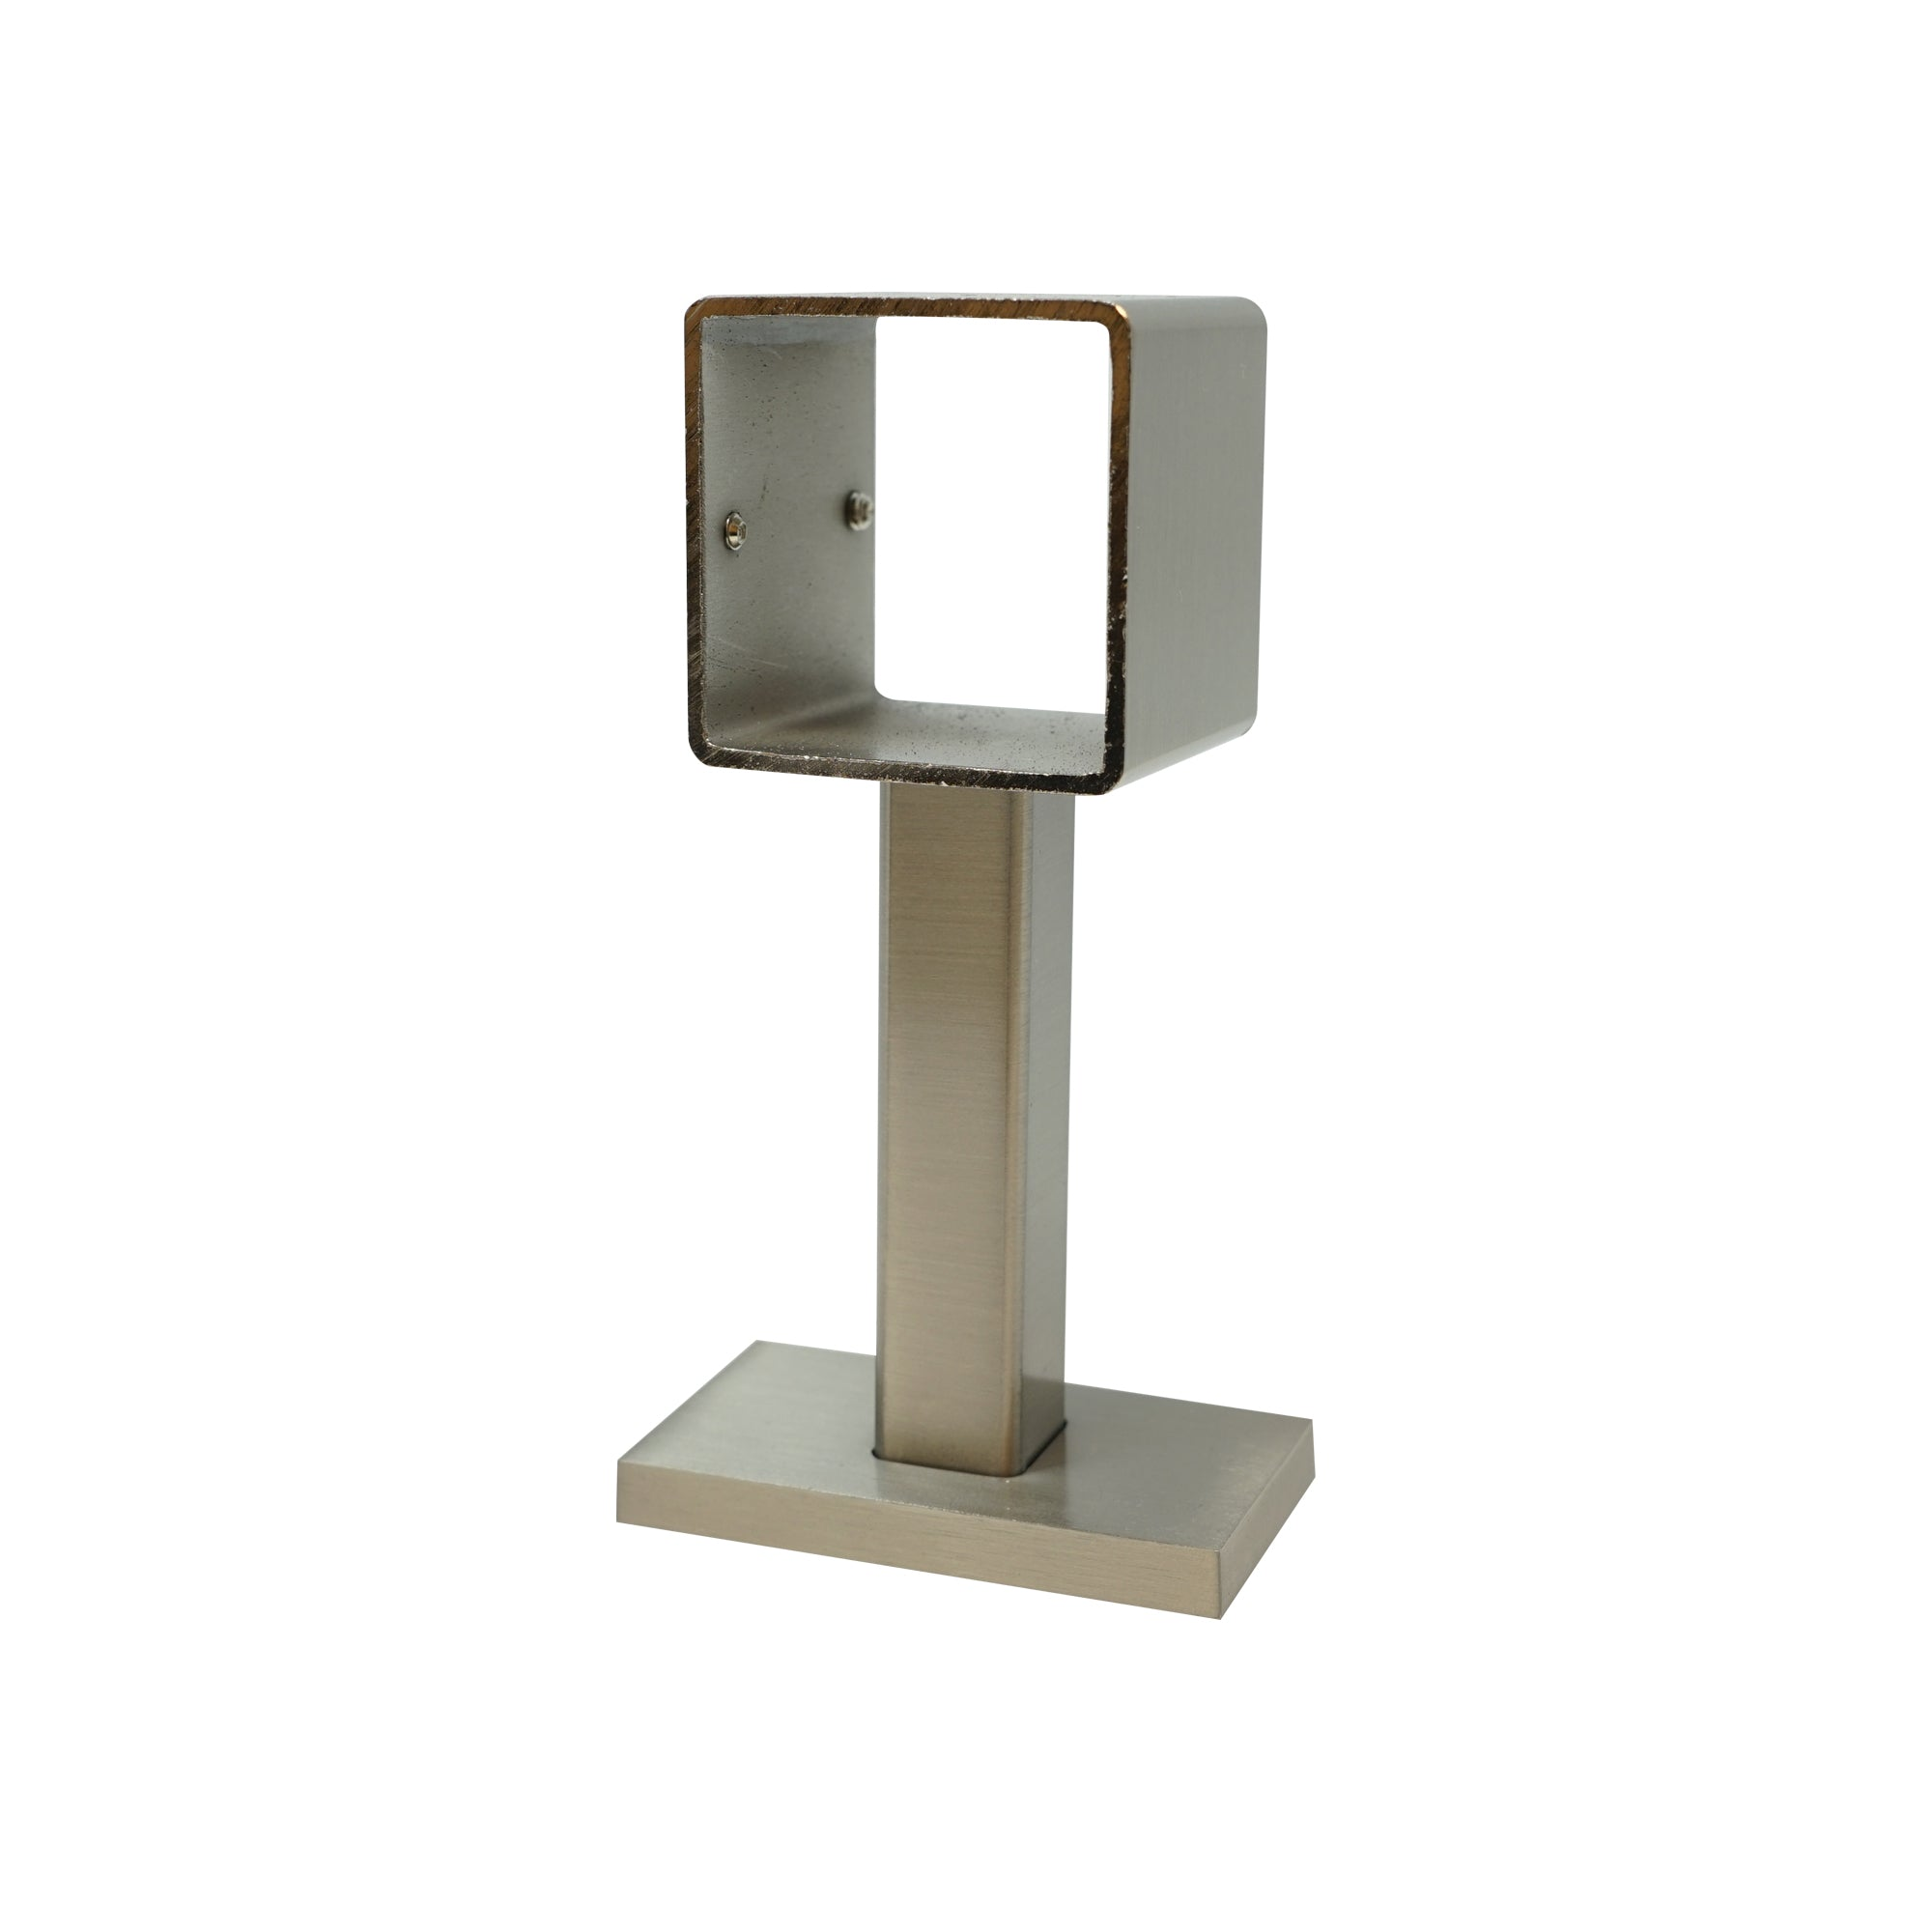 Square Metal Bracket - Pewter Finish